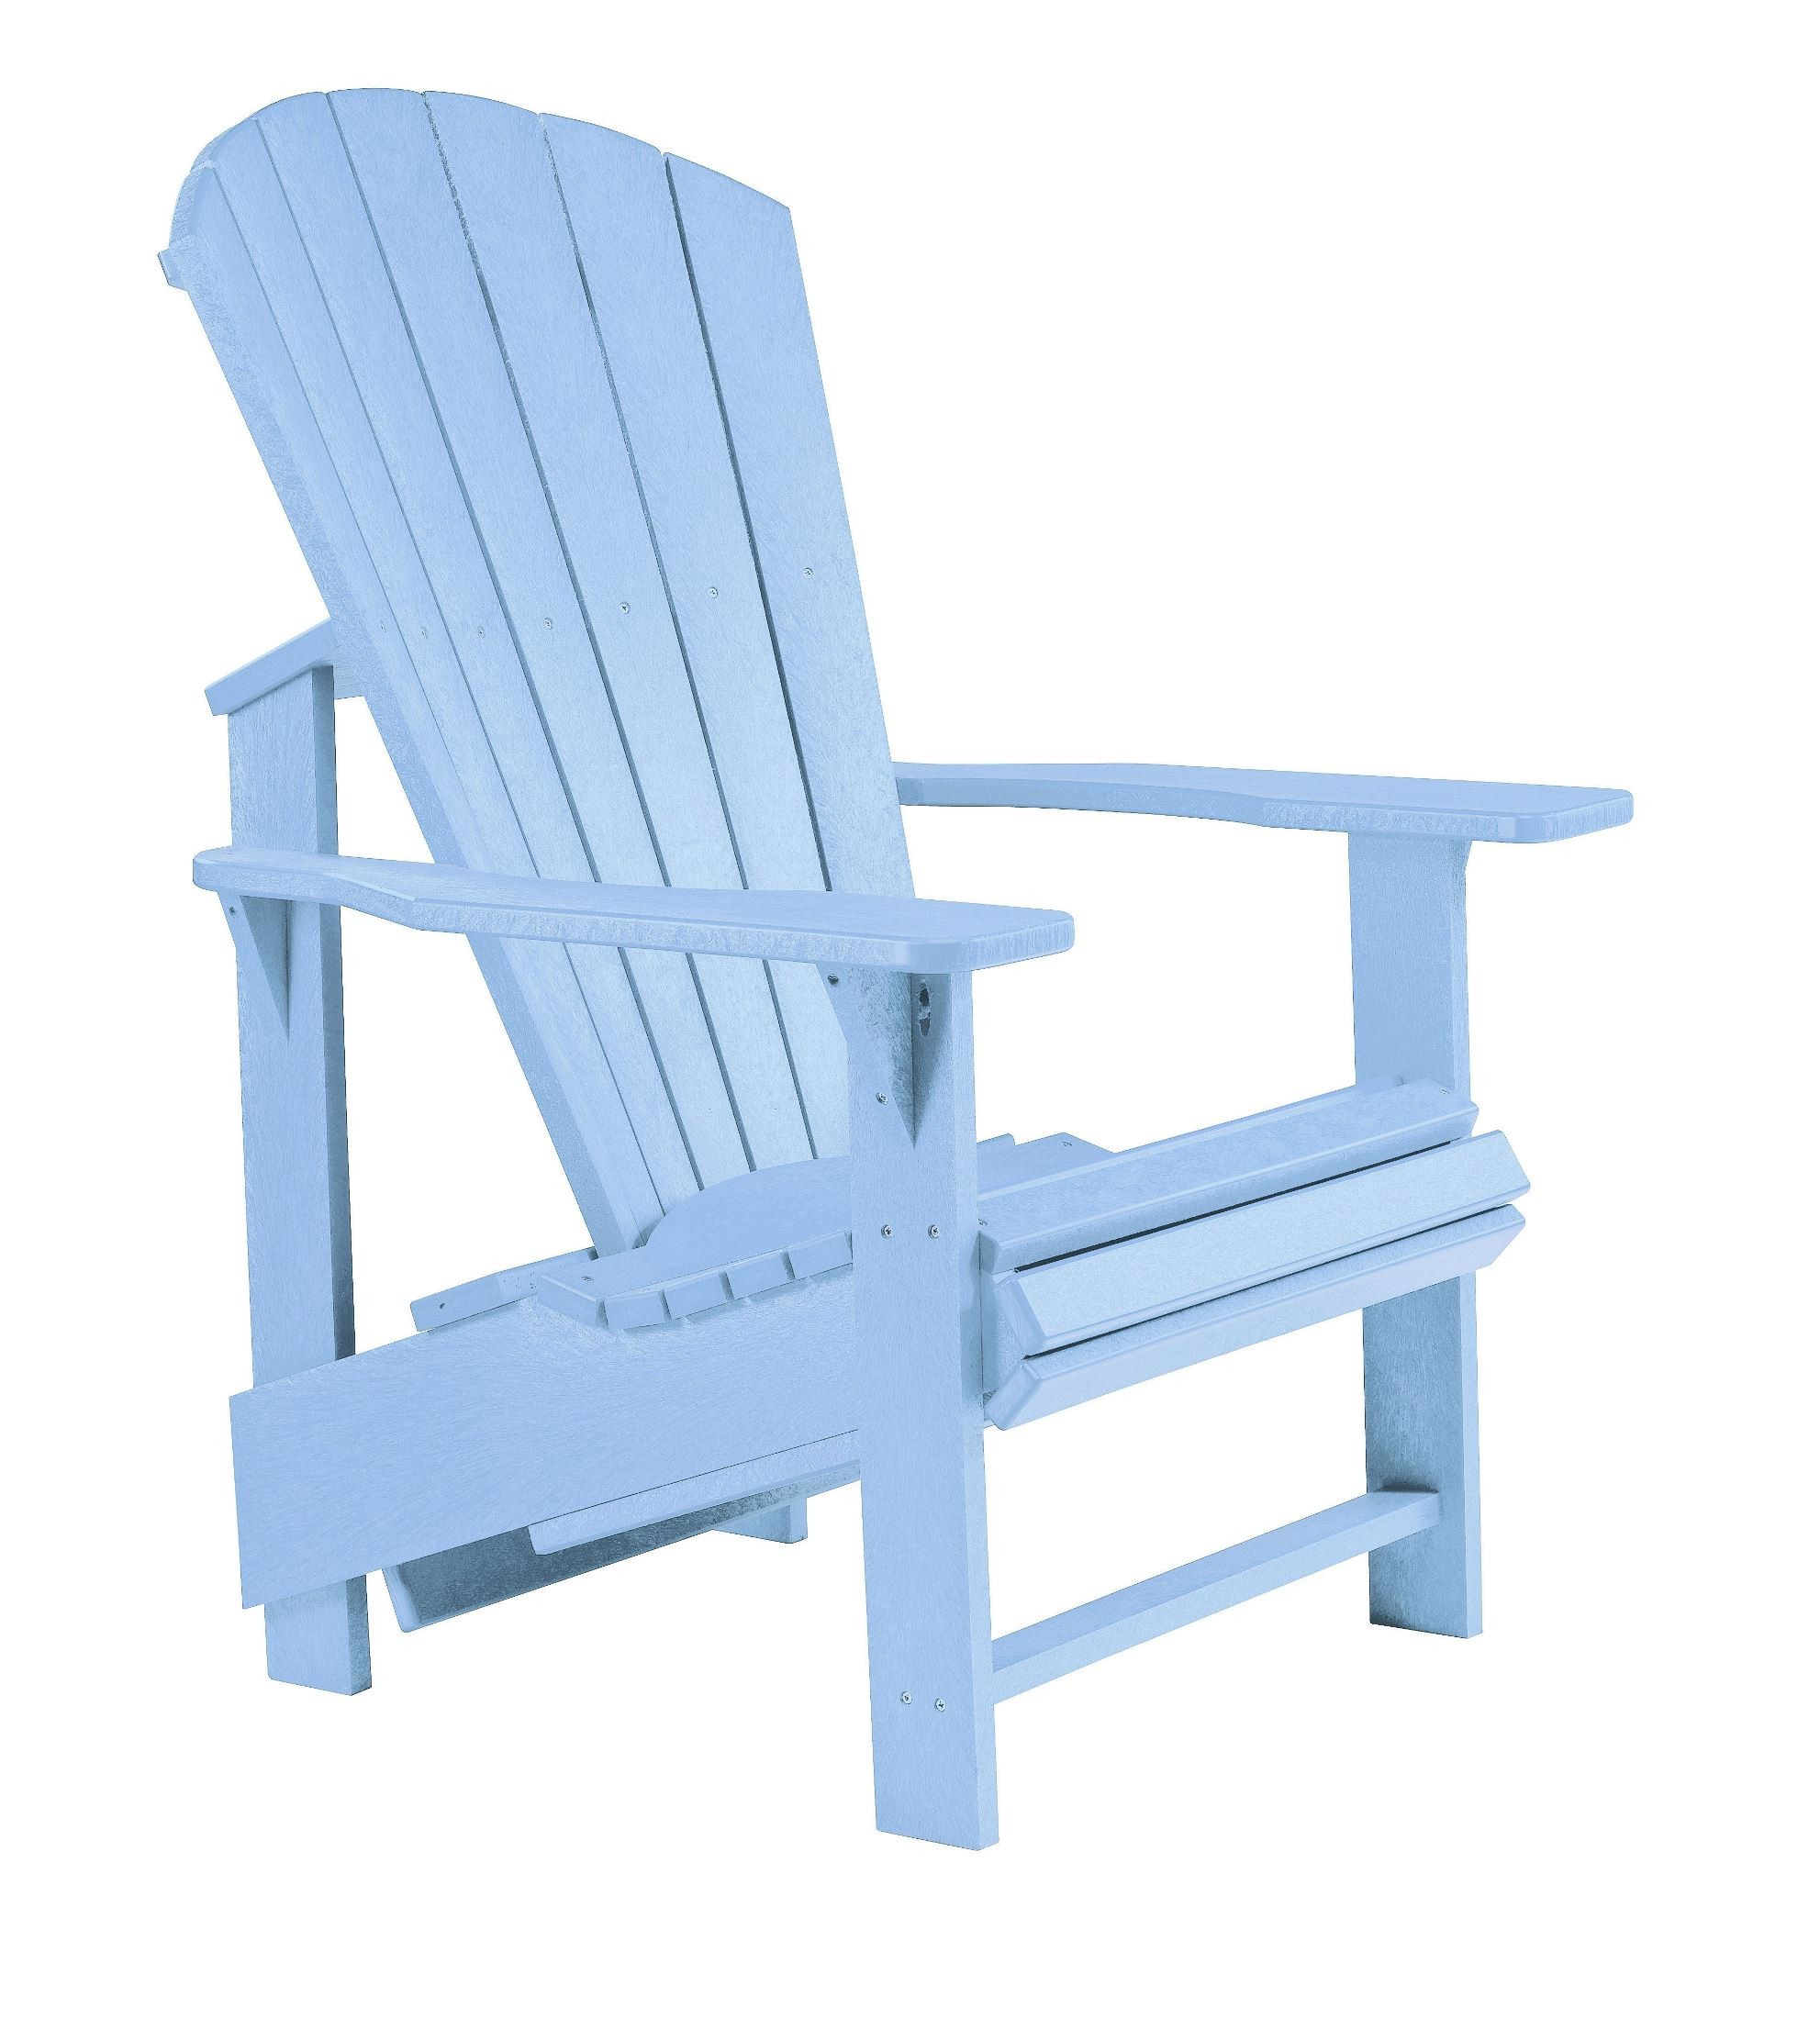 Generations Sky Blue Upright Adirondack Chair From Cr